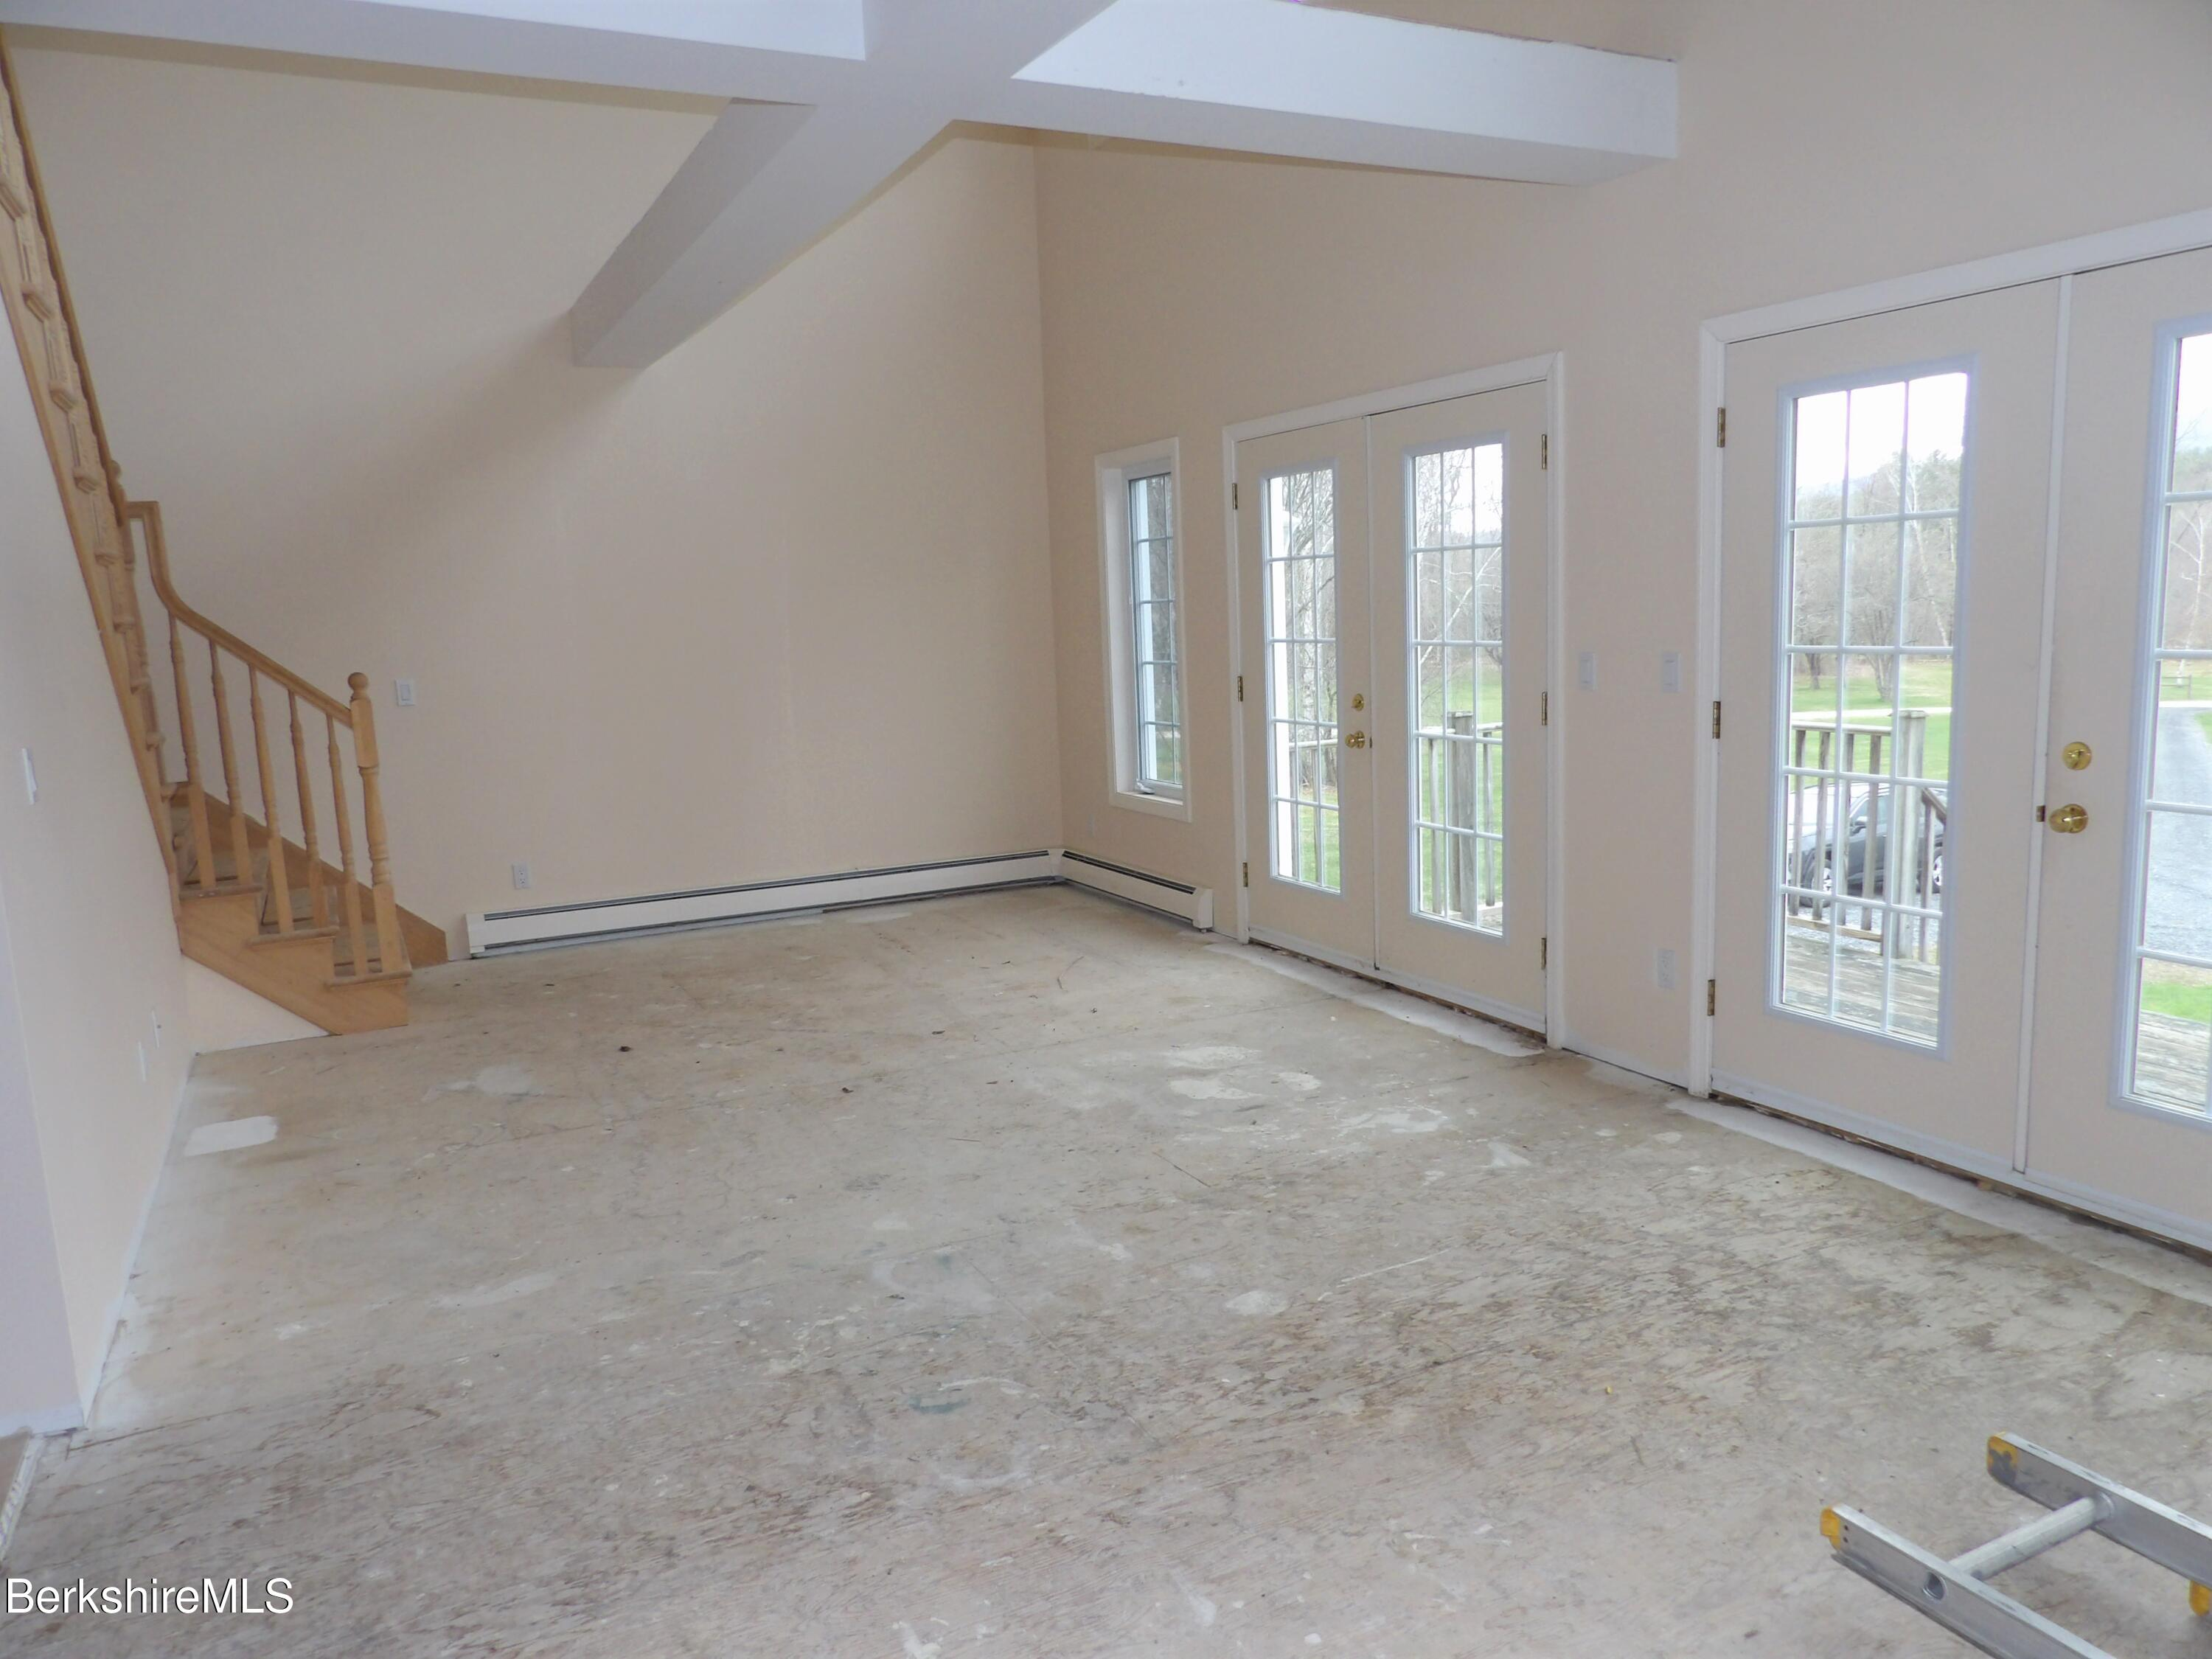 Living Room - Front Entry